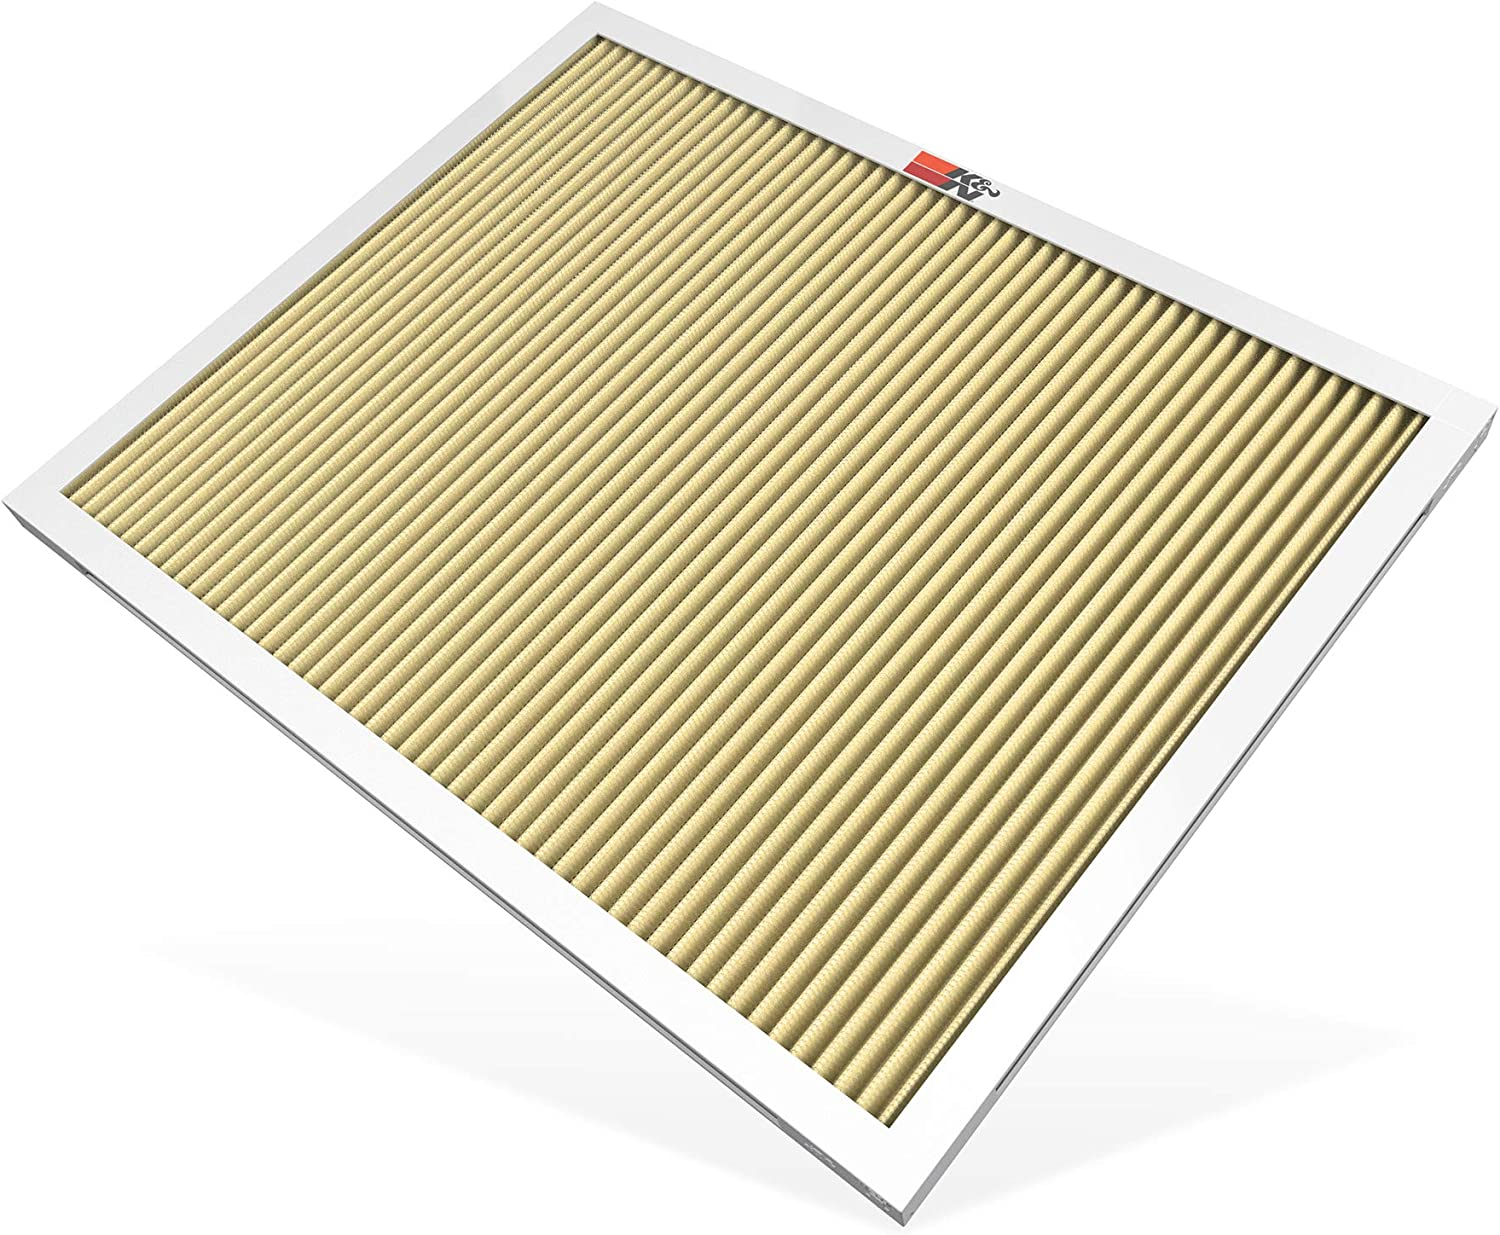 K&N 16x20x1 HVAC Furnace Air Filter; Lasts a Lifetime; Washable; Merv 11; Filters Allergies, Pollen, Smoke, Dust, Pet Dander, Mold, Smog, and More; Breathe Cleanly at Home, HVC-11620